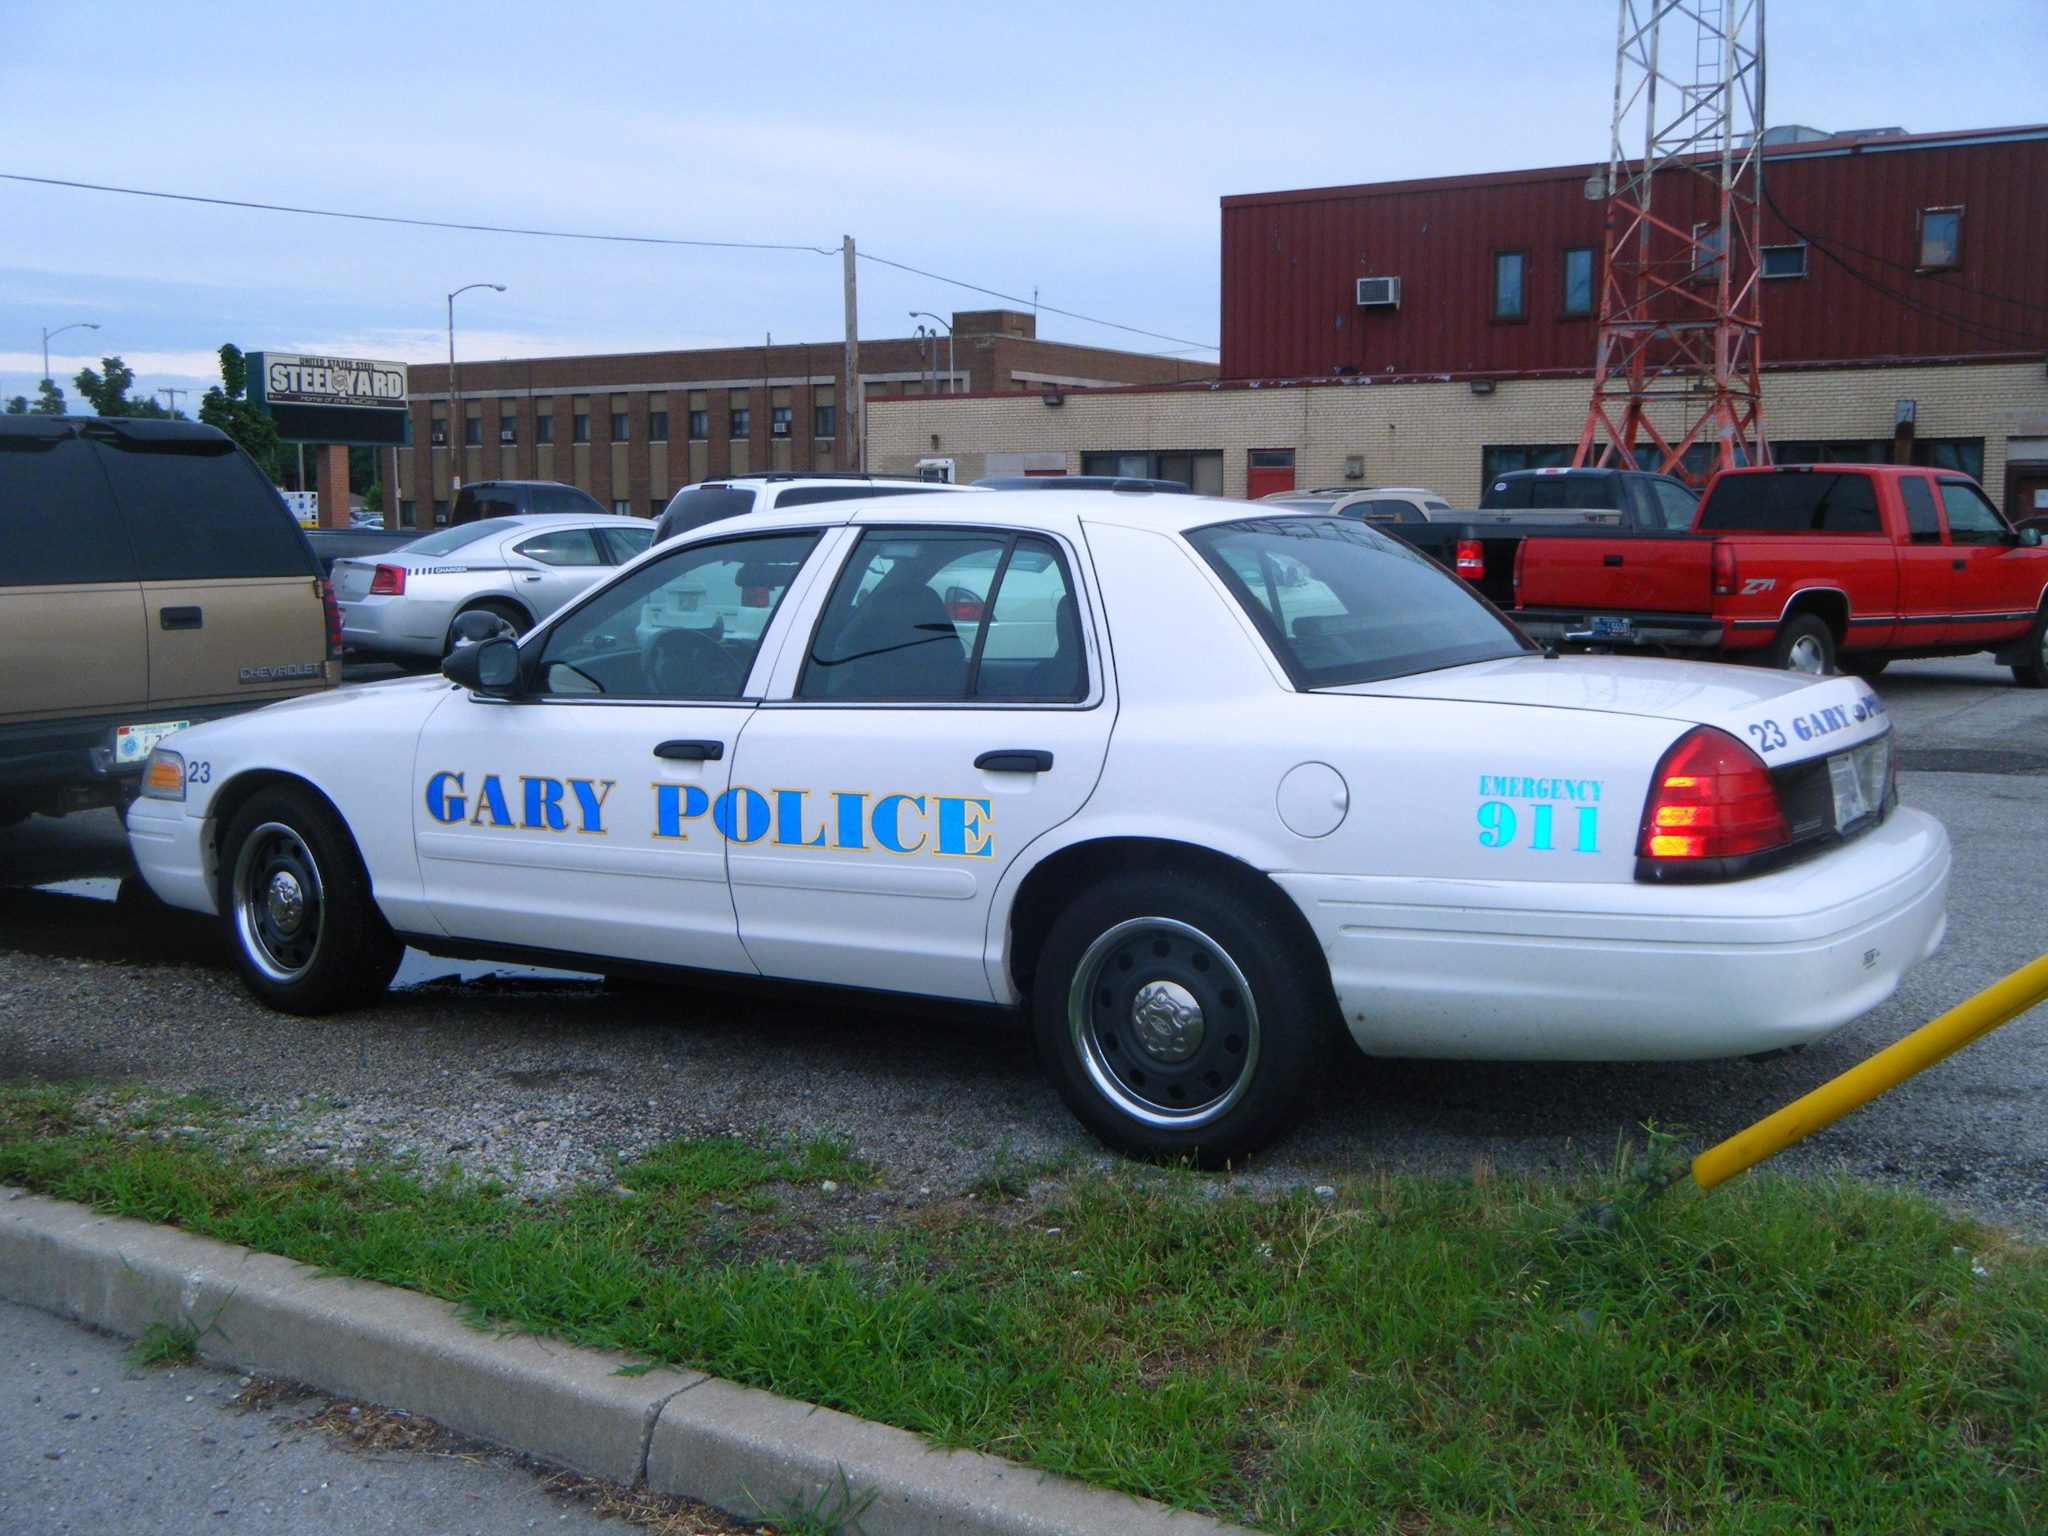 A man and a woman were found dead Feb. 27, 2021 in a vehicle in Gary.